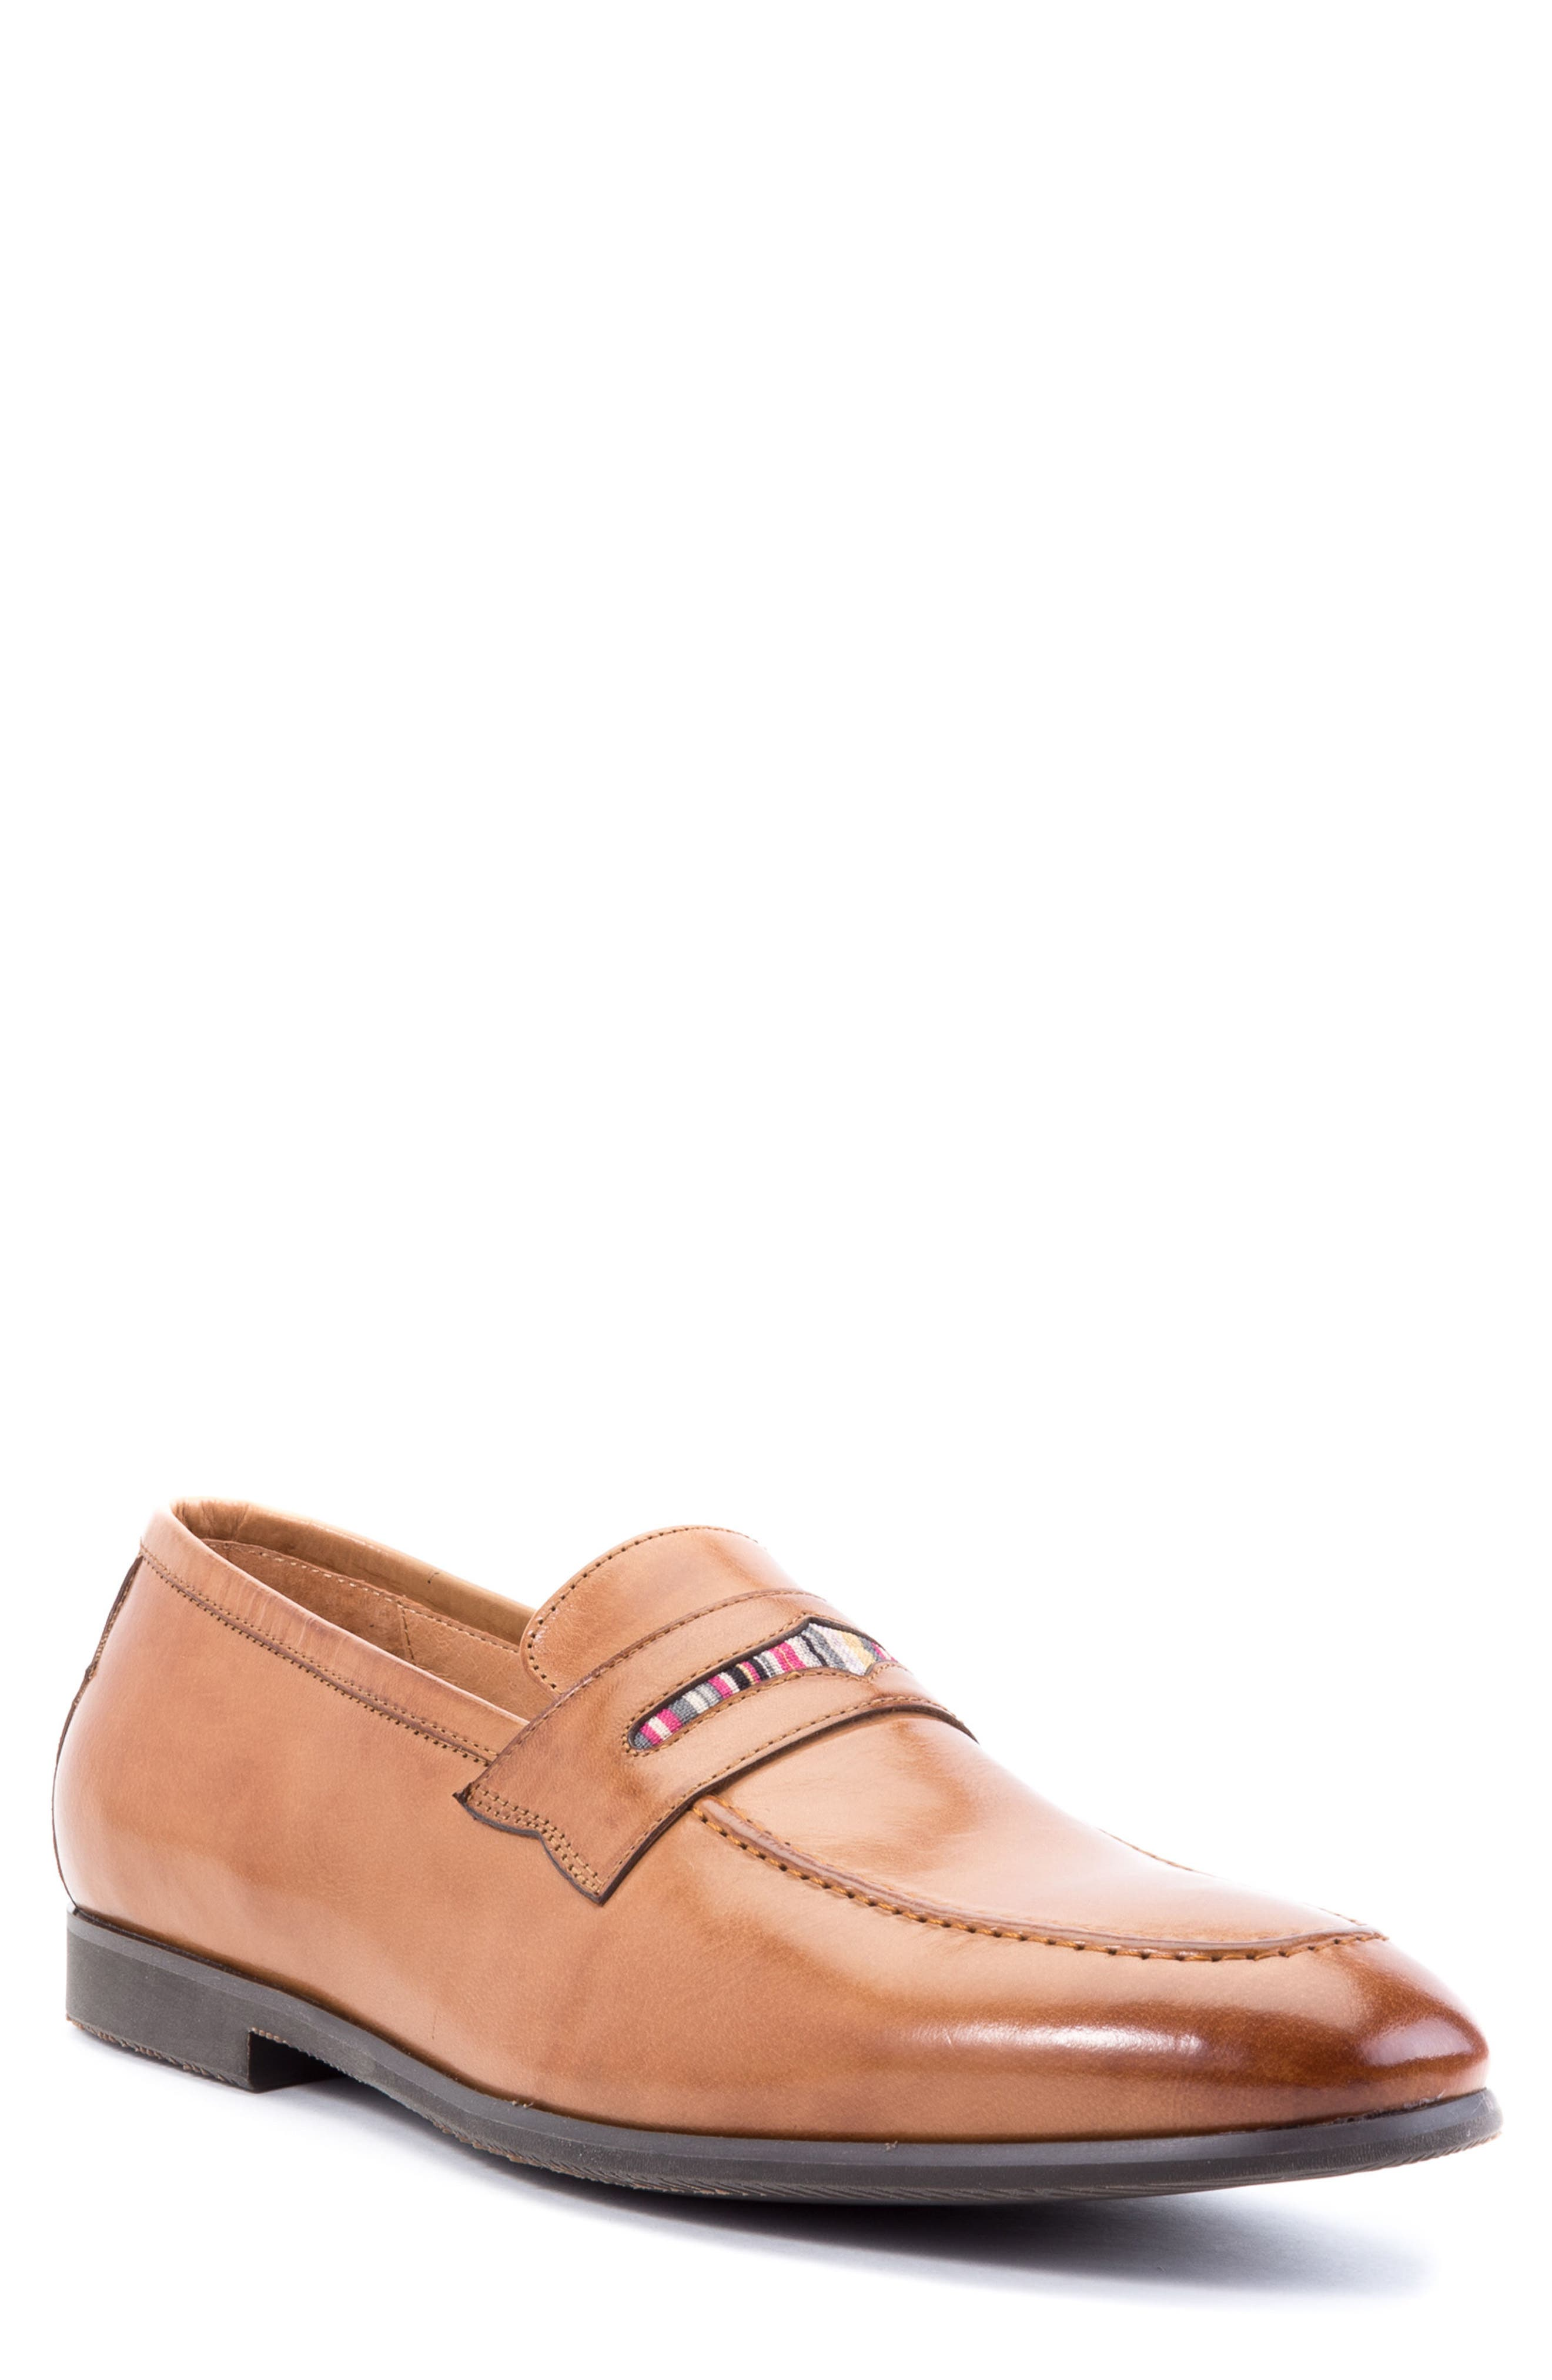 Robert Graham Hugo Penny Loafer, Brown